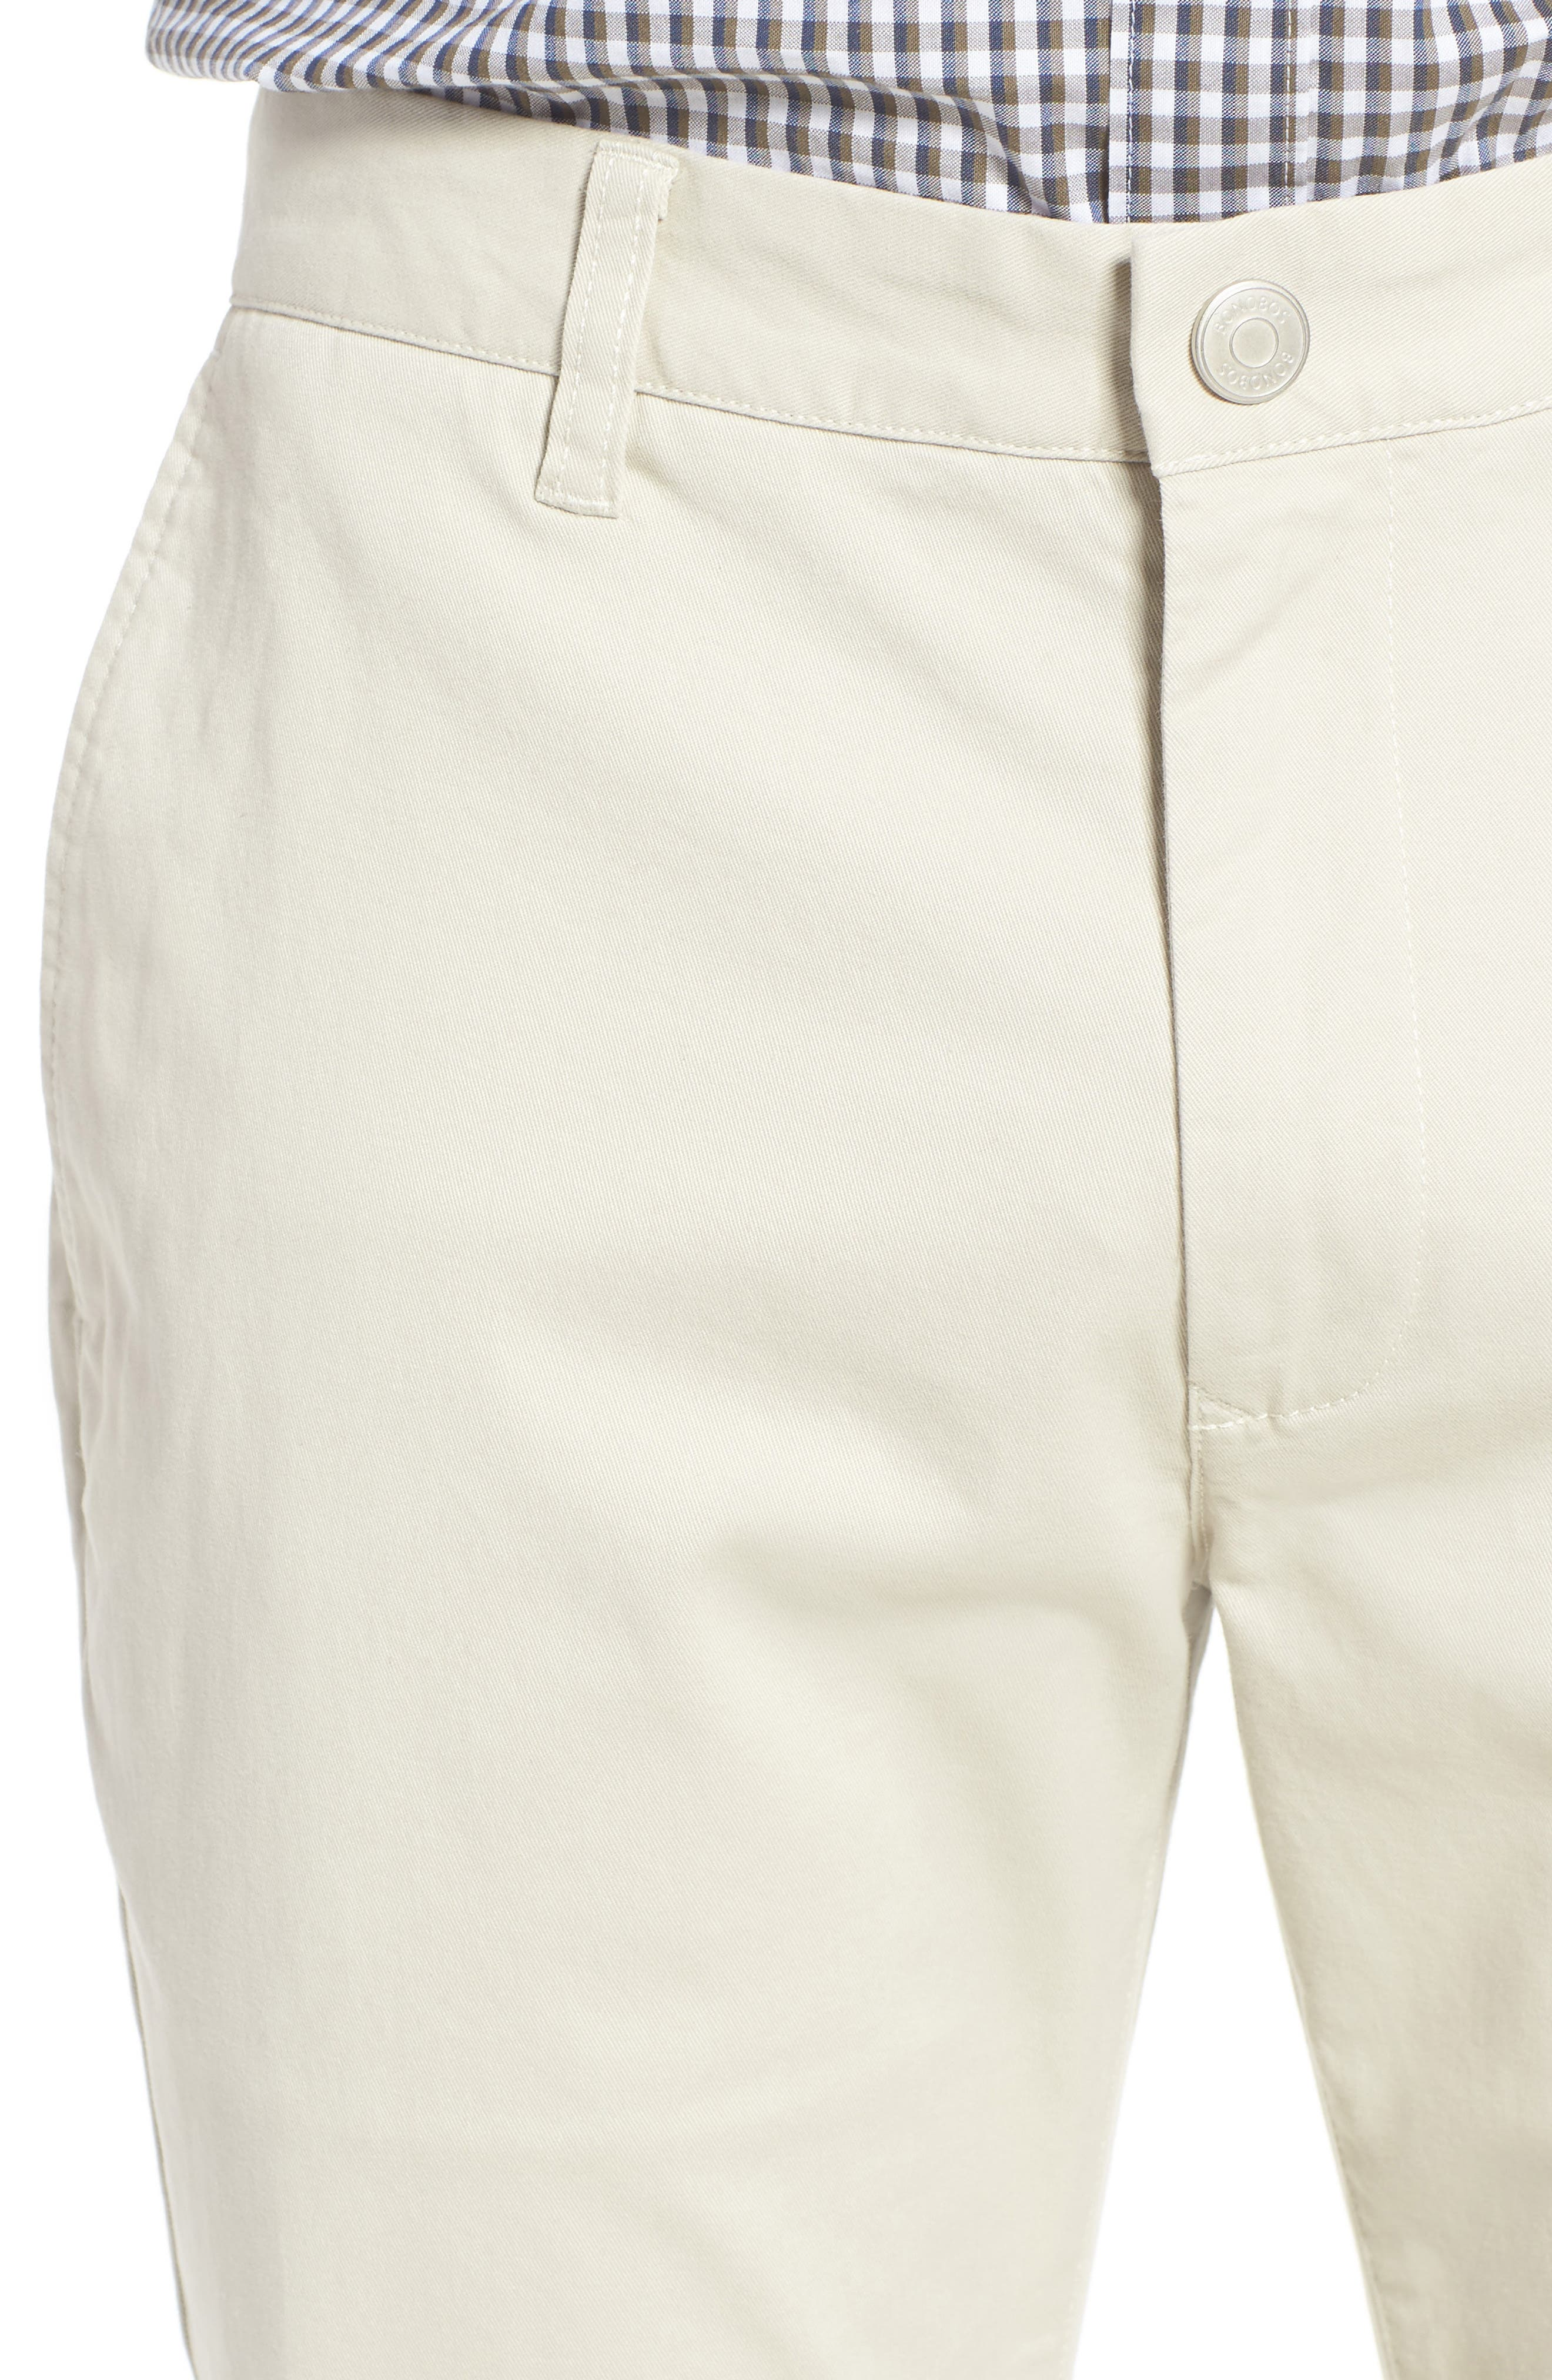 Tailored Fit Washed Stretch Cotton Chinos,                             Alternate thumbnail 134, color,